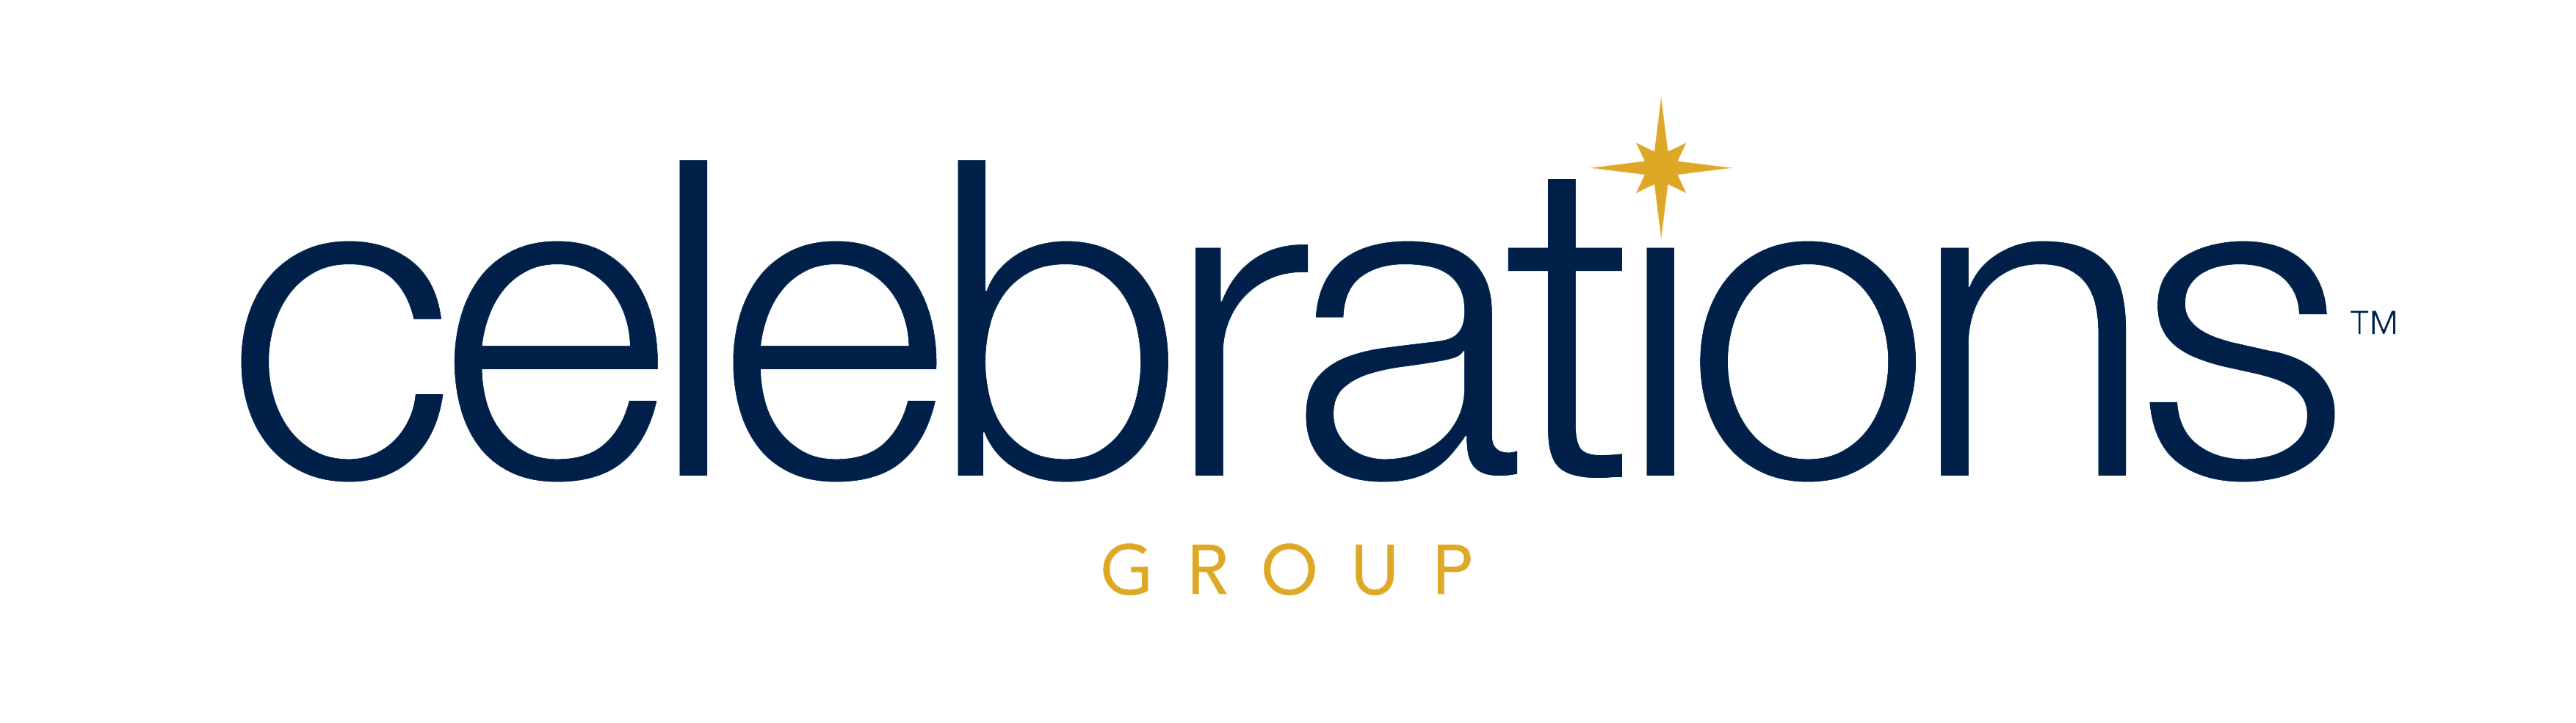 Celebrations Christmas logo